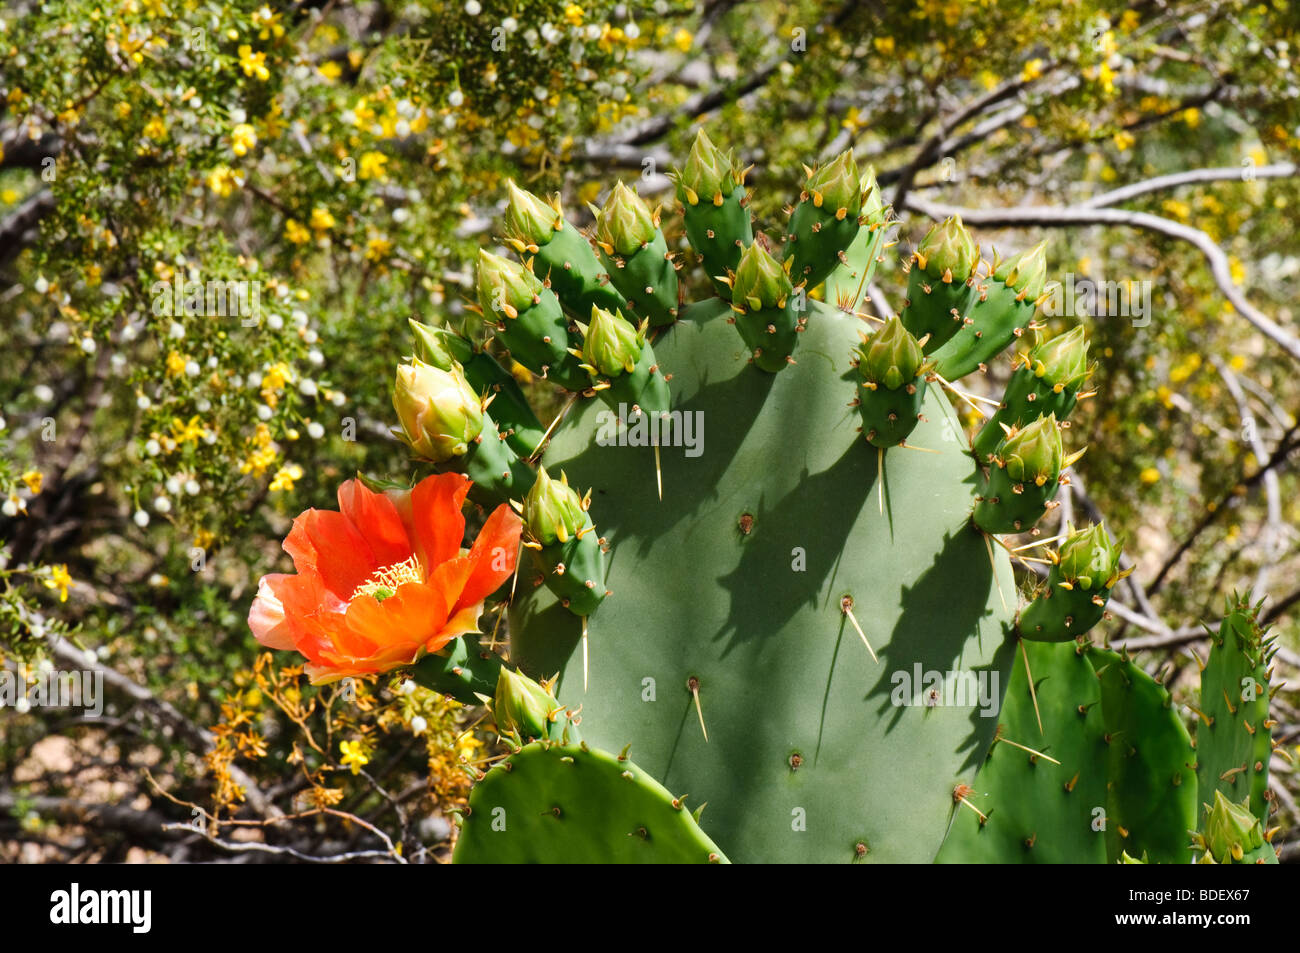 Prickly Pear Cactus In Bloom With Creosote Bush In